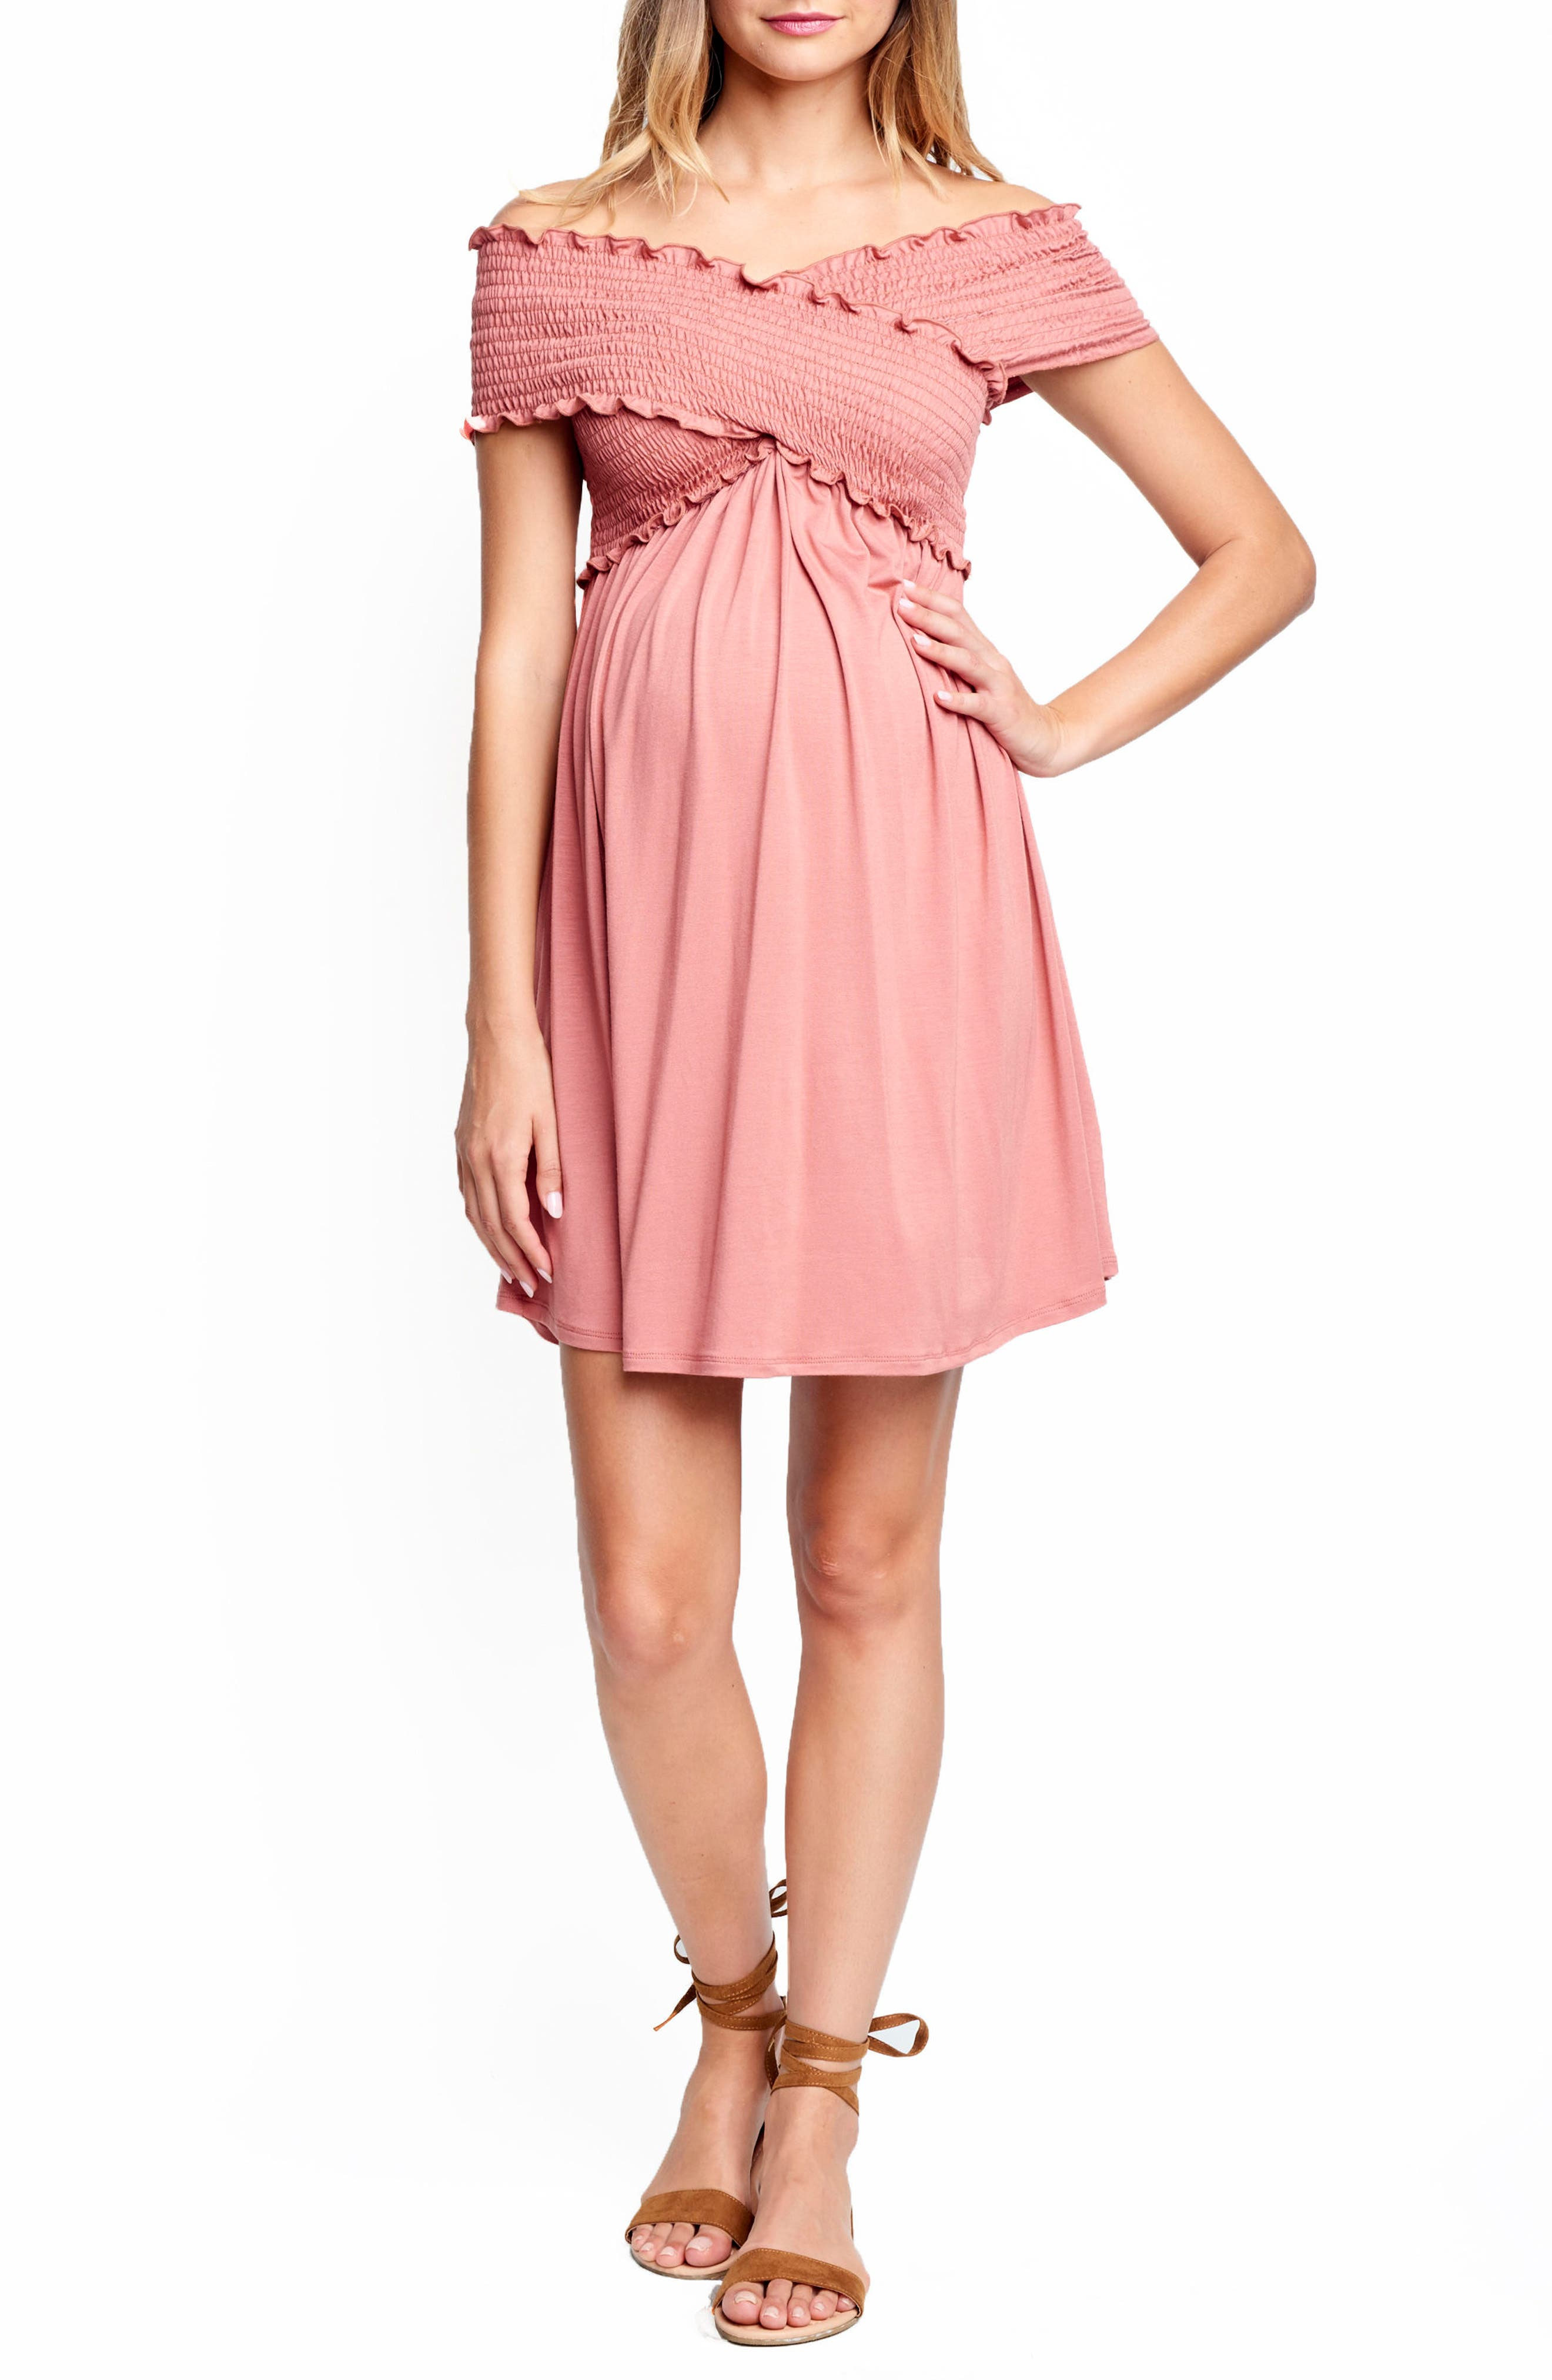 Maternal America Off The Shoulder Ribbed Maternity Dress, Coral